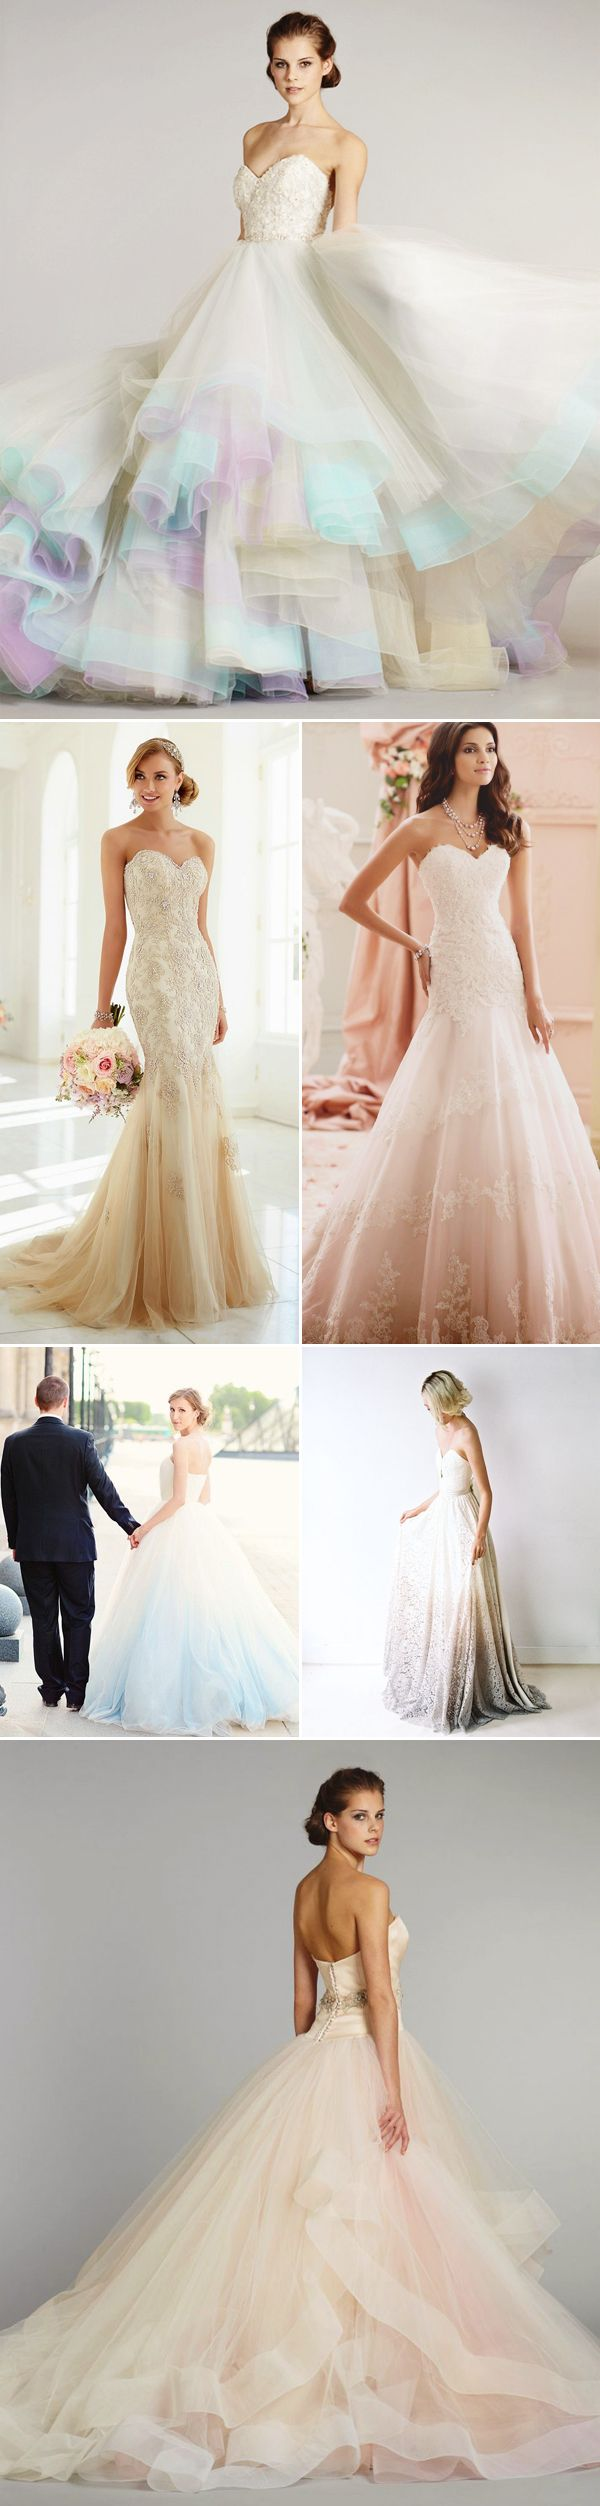 "Most Romantic Bridal Trend! 22 ""Barely Colorful"" Wedding dresses with a Touch of Color! Colors at the bottom"